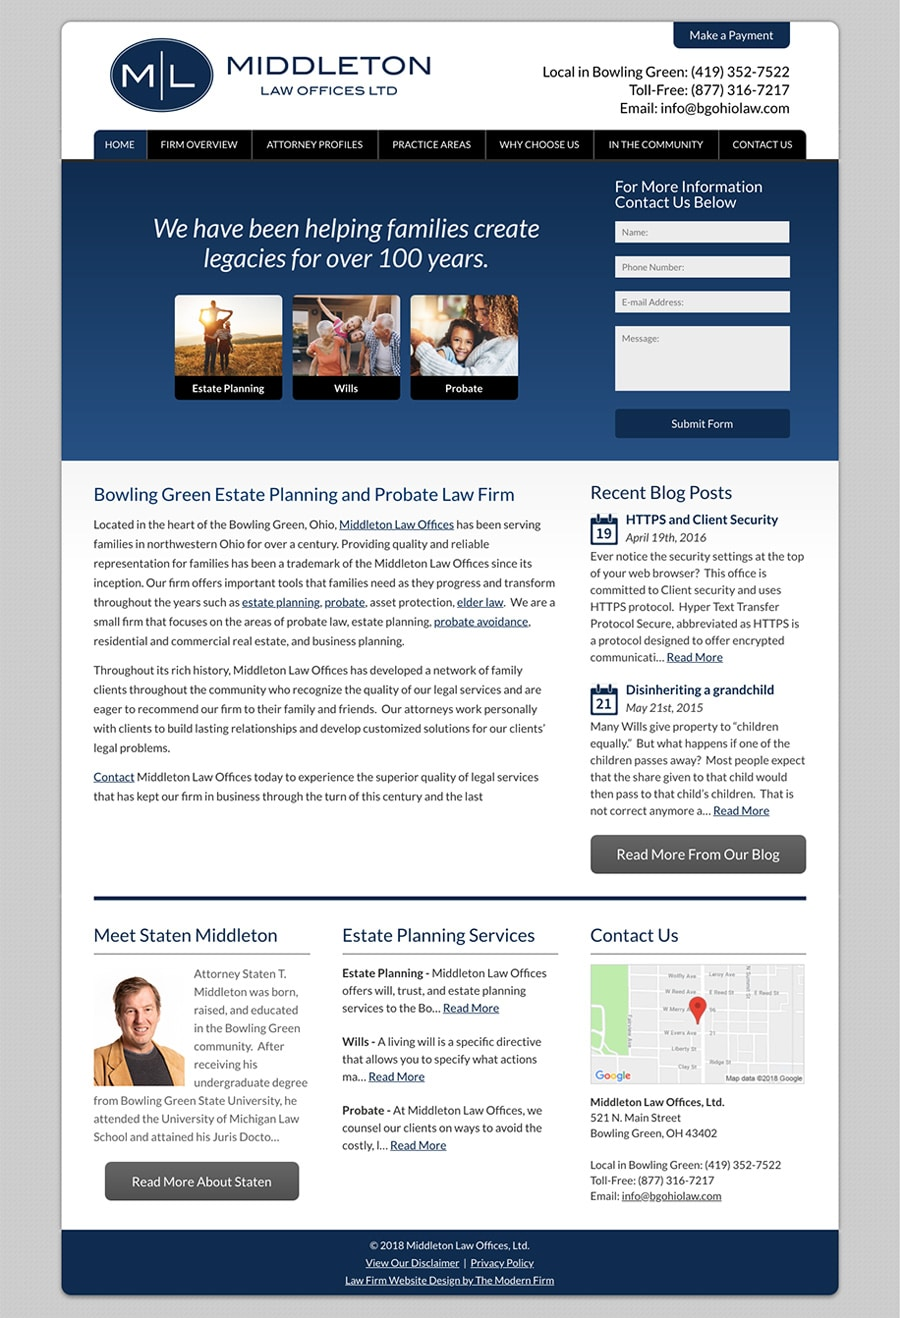 Law Firm Website Design for Middleton Law Offices, Ltd.